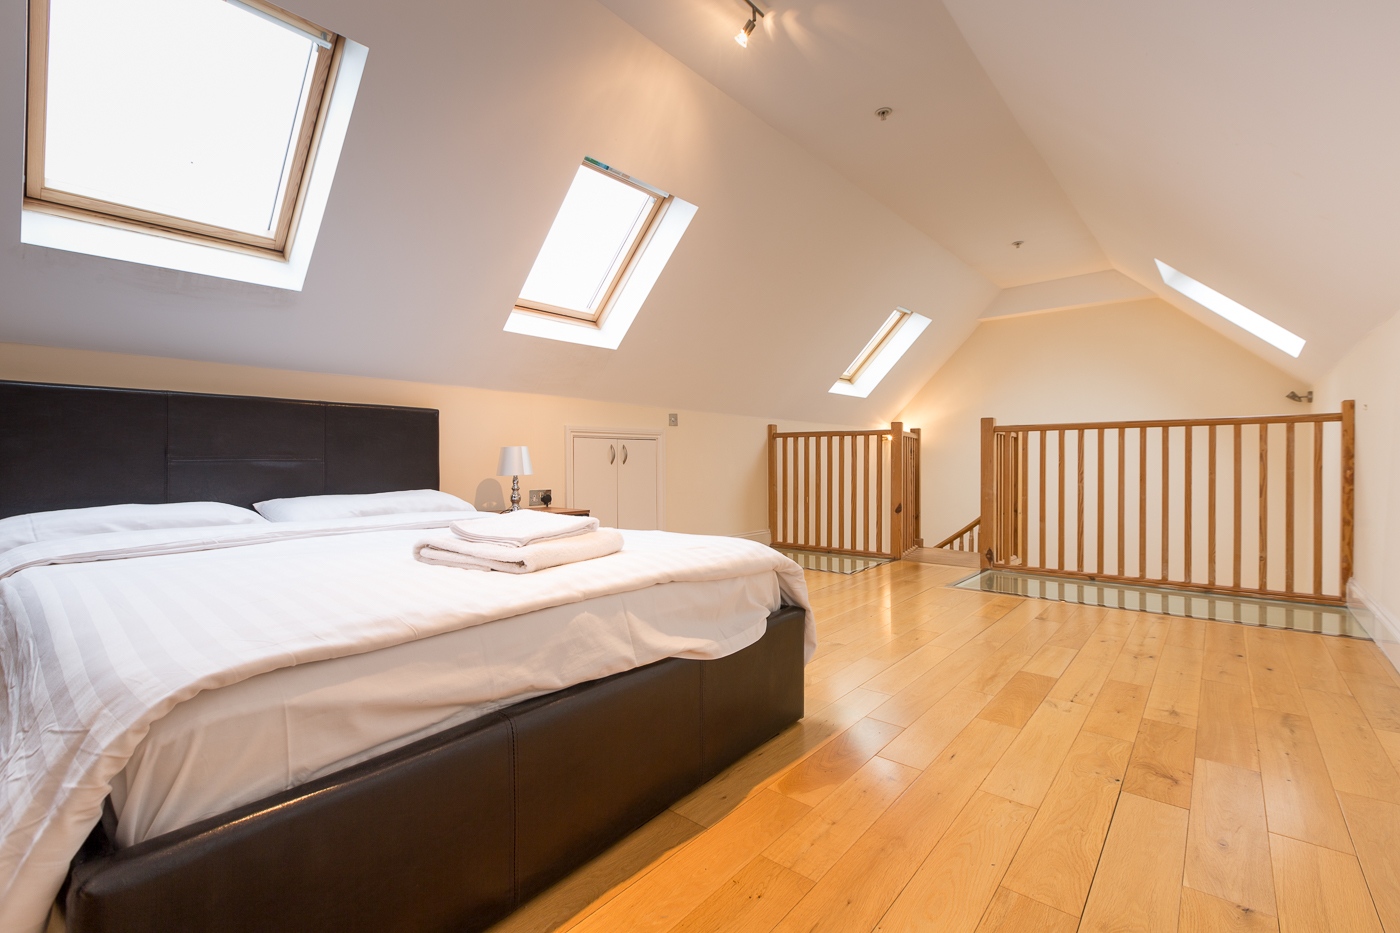 Spacious bedroom at Castle Mews Apartment, Centre, Bedford - Citybase Apartments